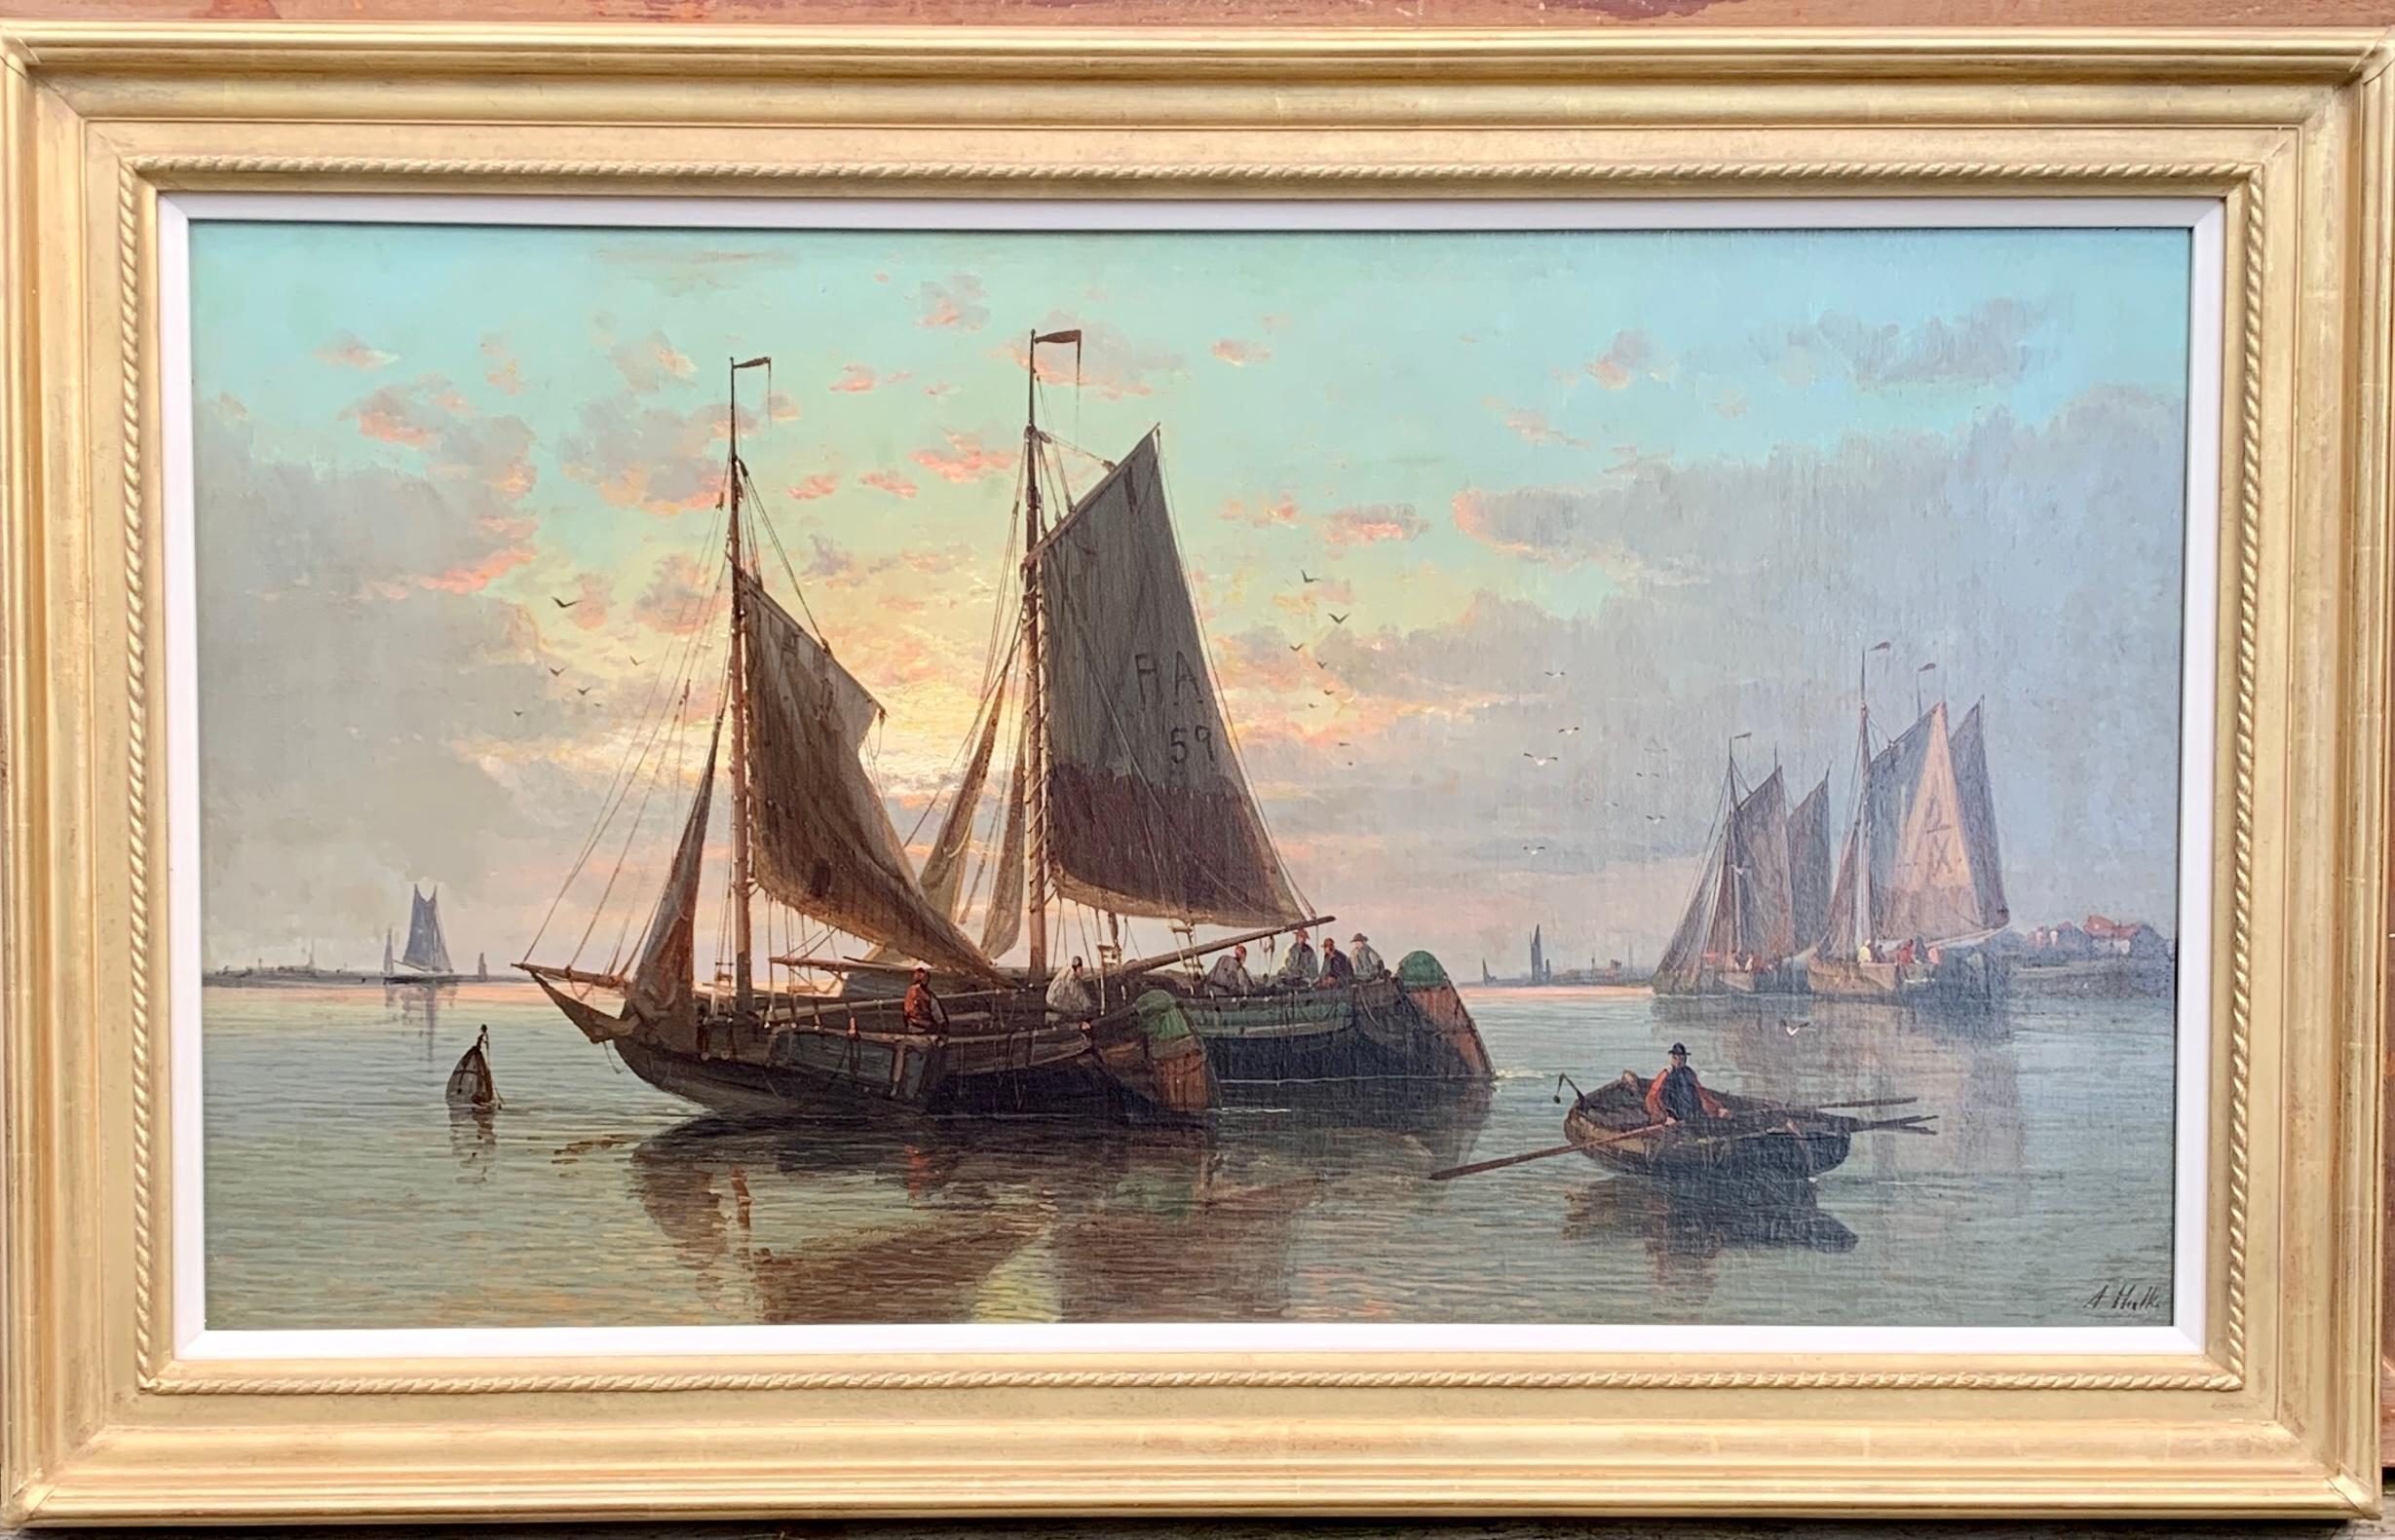 19th Century English or Dutch fishing boats at calm, with a landscape and sunset